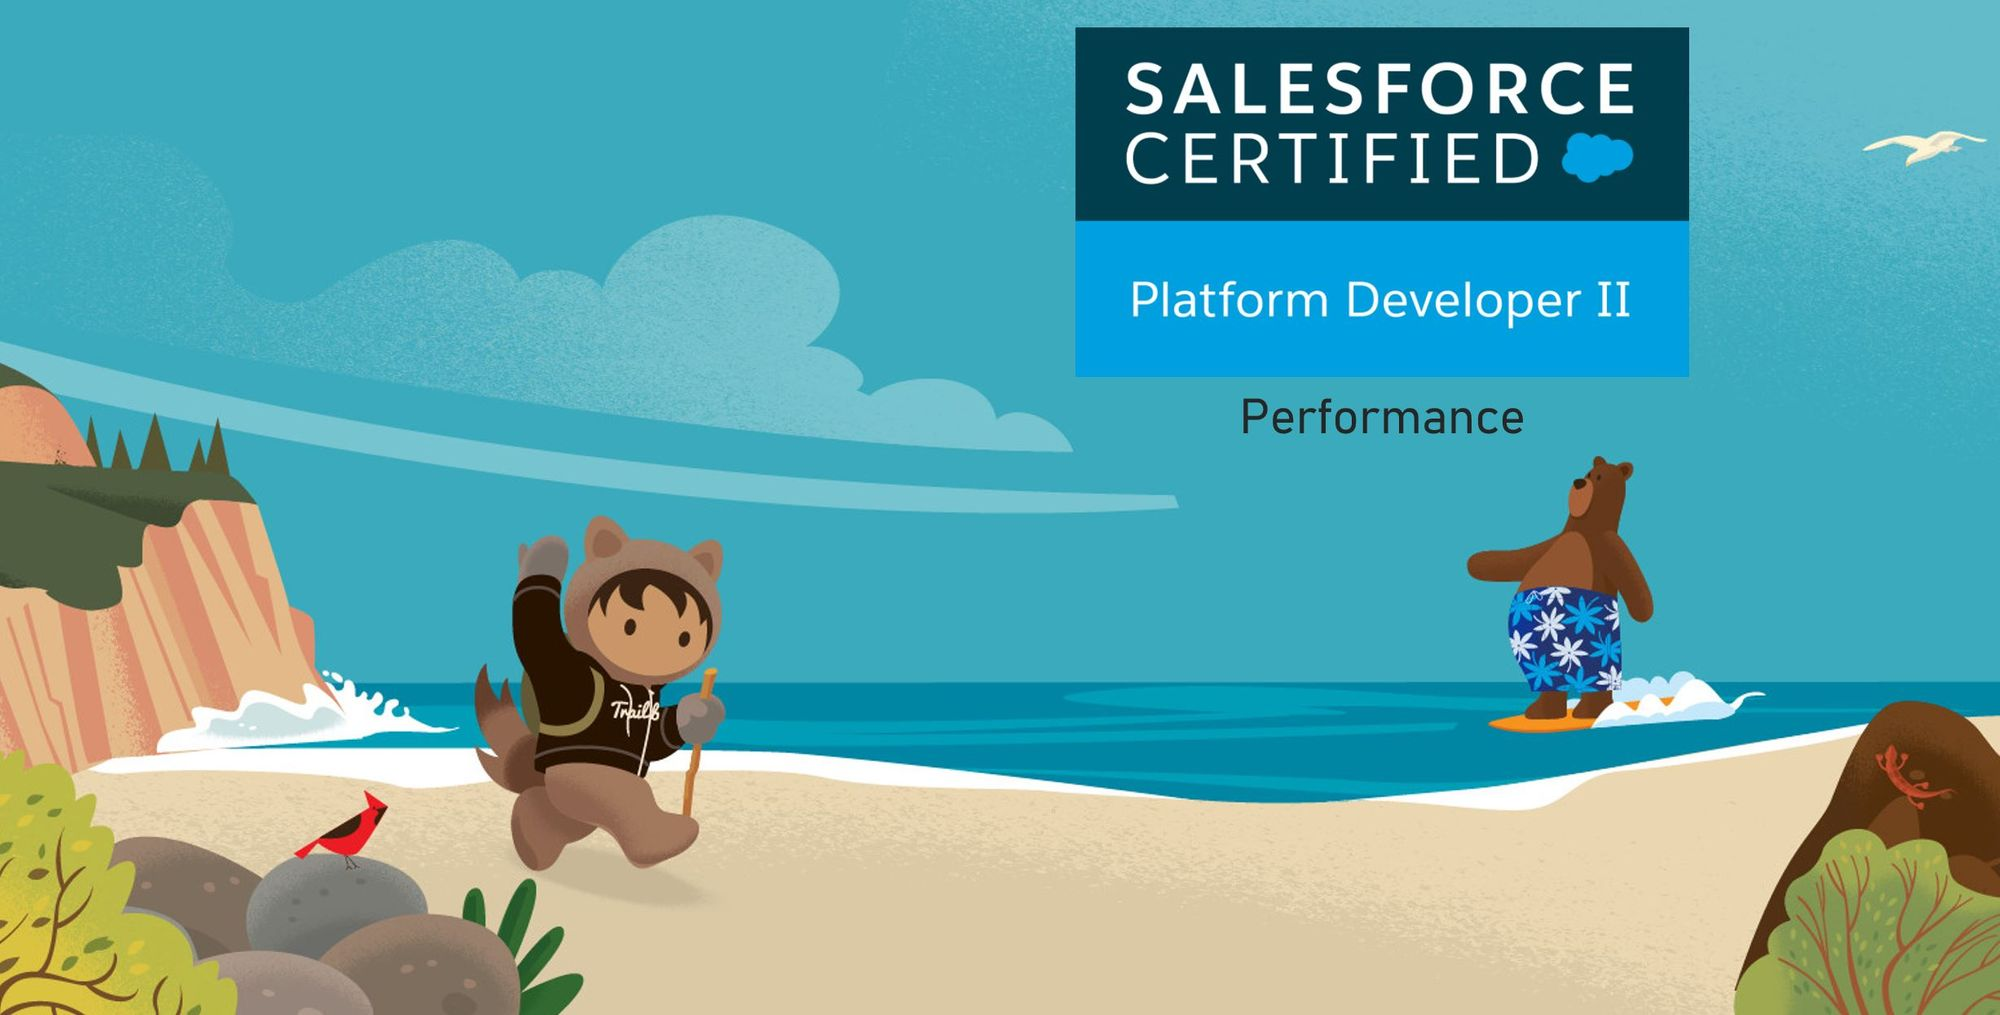 Salesforce Platform Dev II Exam Preparation: Performance